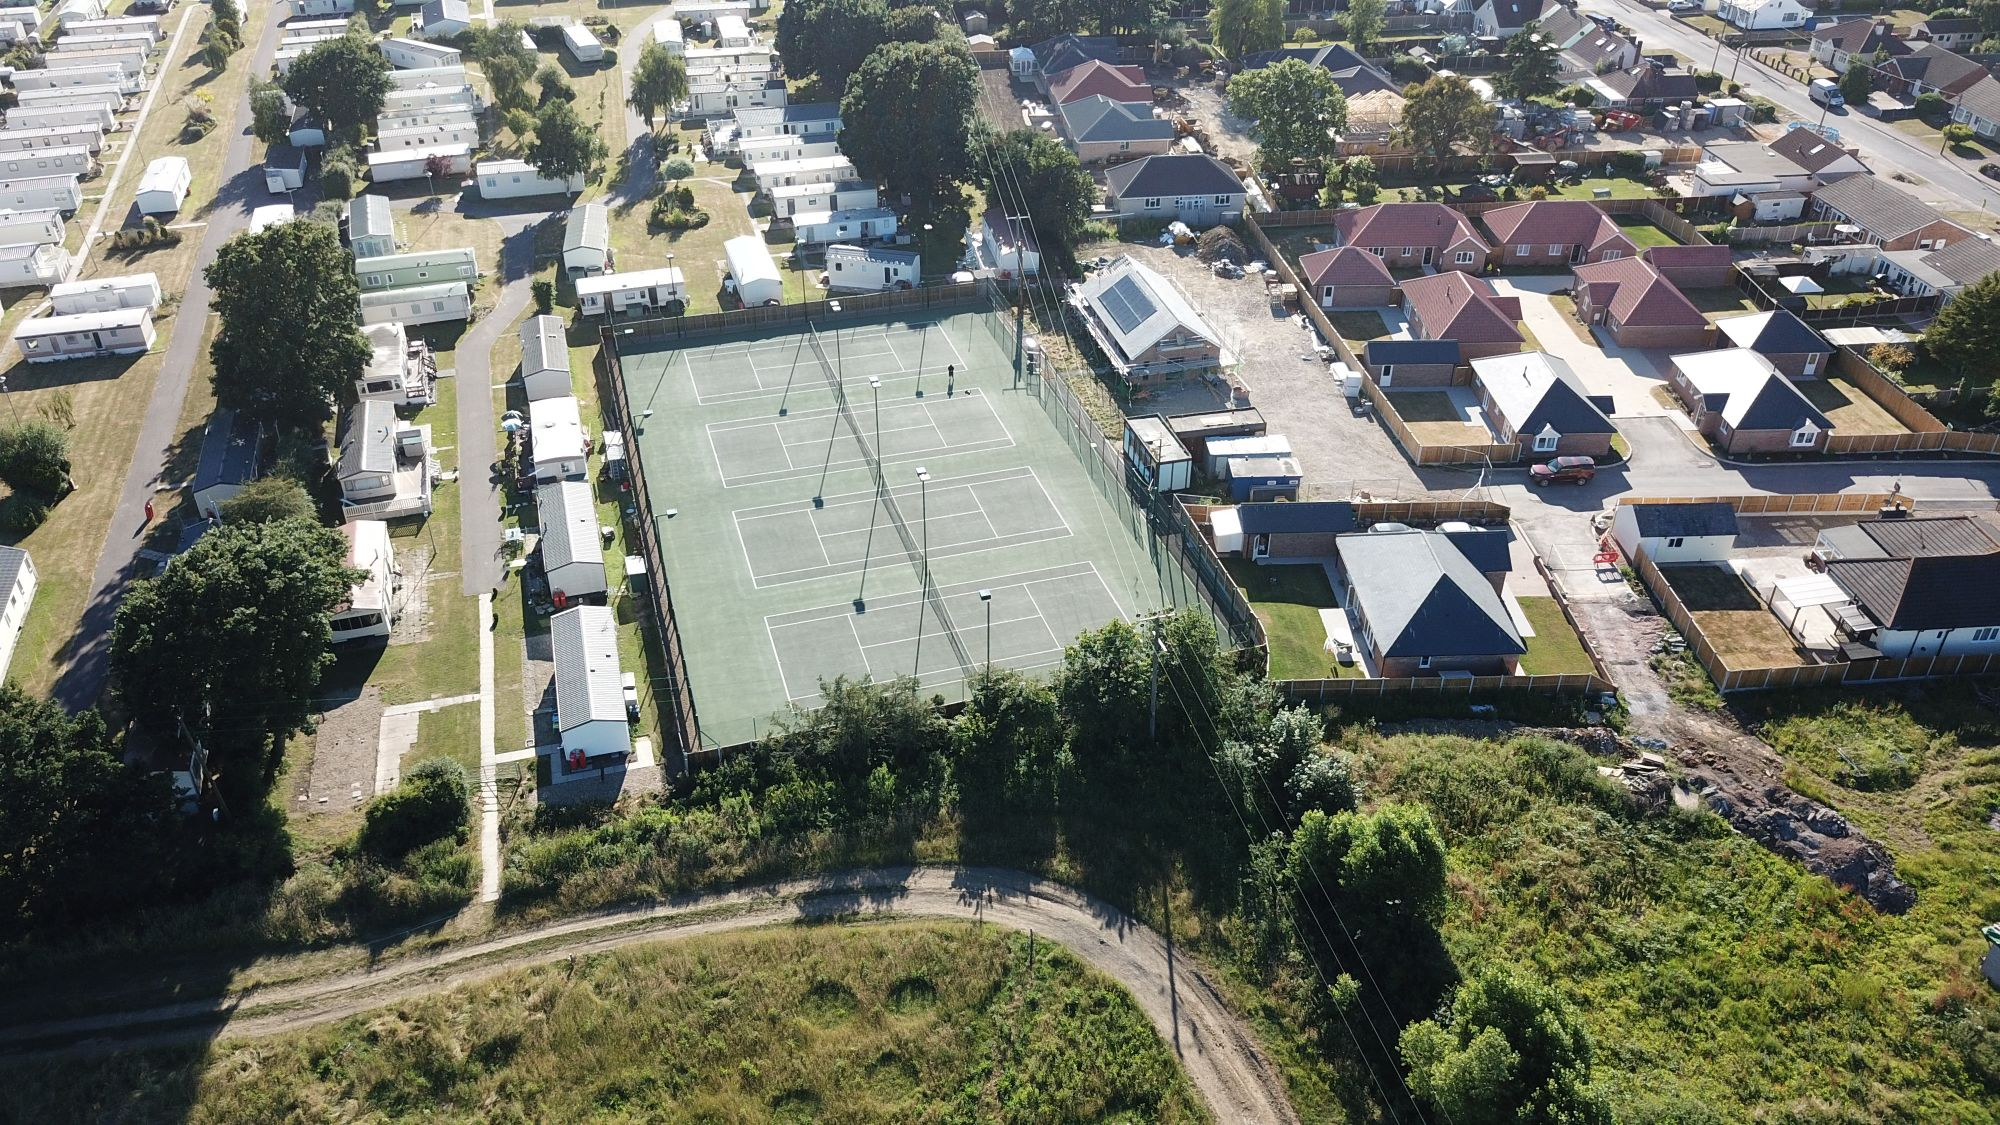 ETC Sports Surfaces are specialists in installing industry leading asphalt tennis courts in residential areas